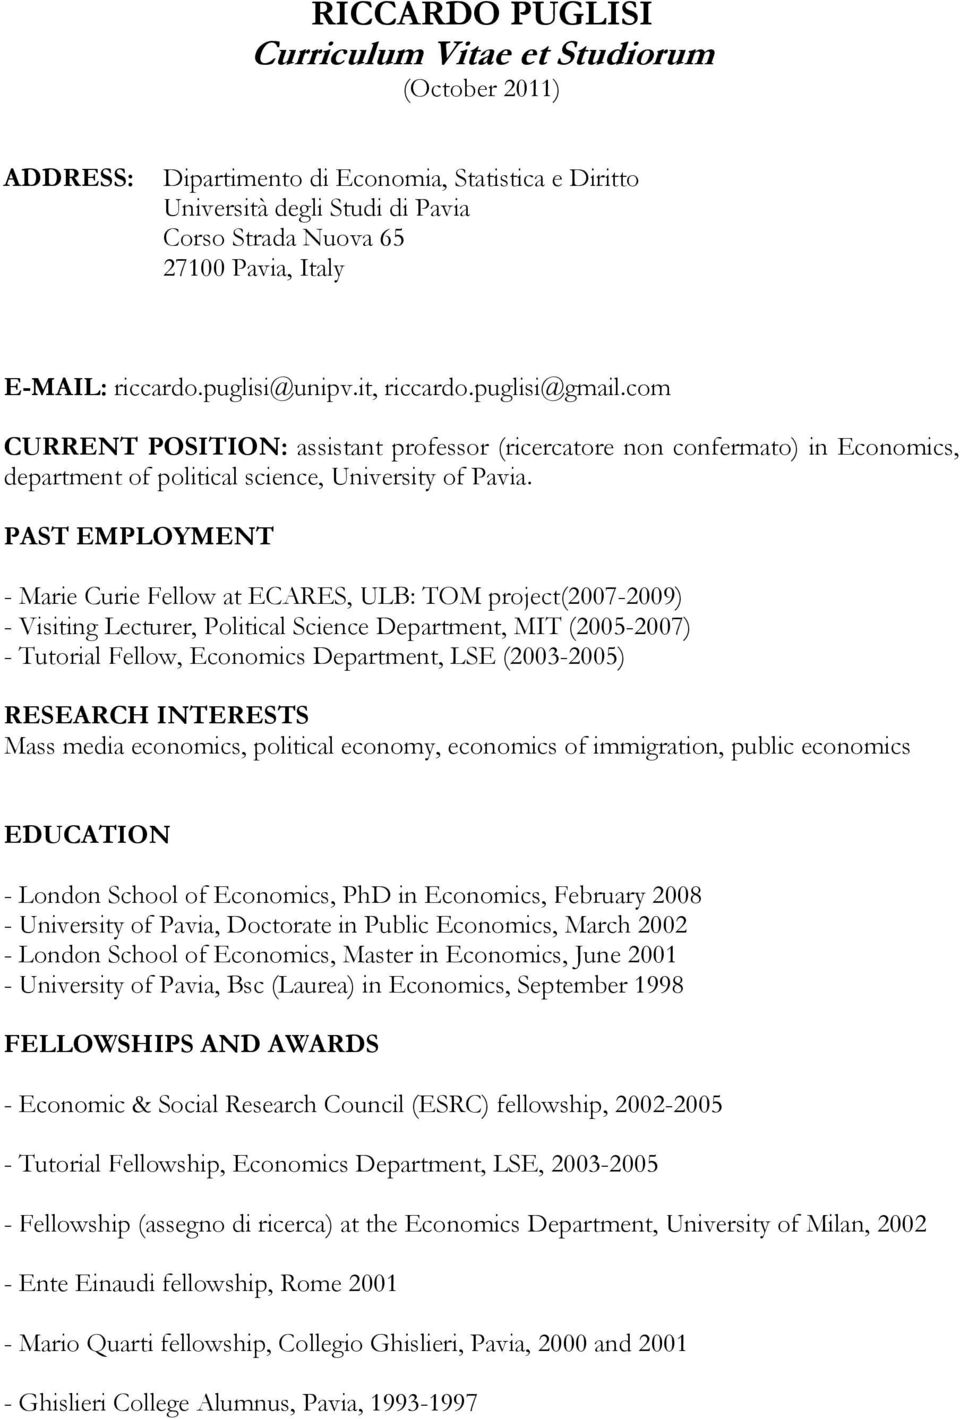 PAST EMPLOYMENT - Marie Curie Fellow at ECARES, ULB: TOM project(2007-2009) - Visiting Lecturer, Political Science Department, MIT (2005-2007) - Tutorial Fellow, Economics Department, LSE (2003-2005)